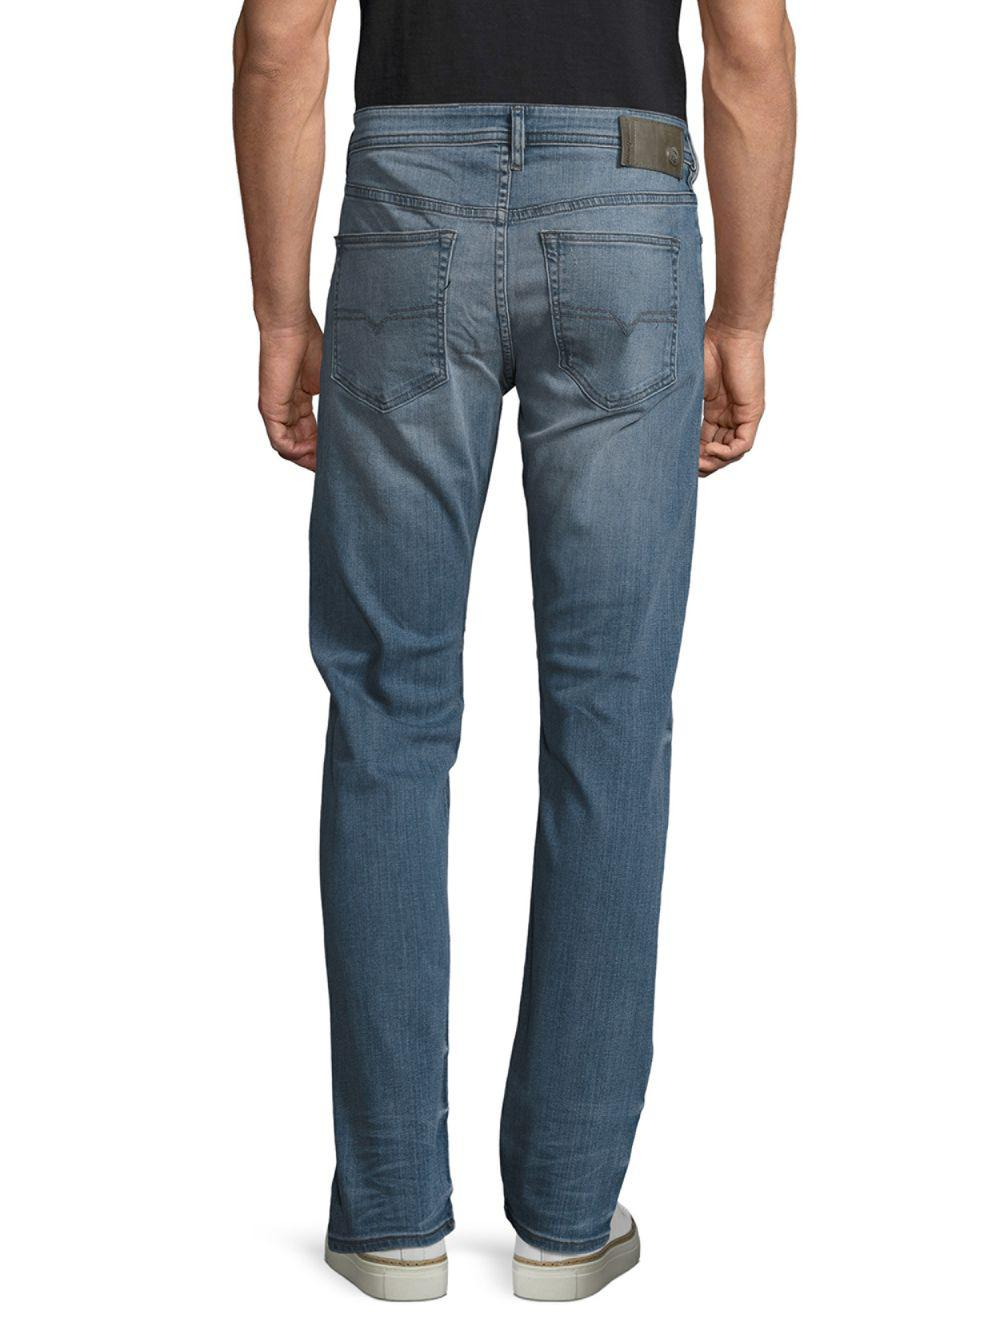 589dbc0cad DIESEL - Blue Buster Distressed Straight Leg Jeans for Men - Lyst. View  fullscreen